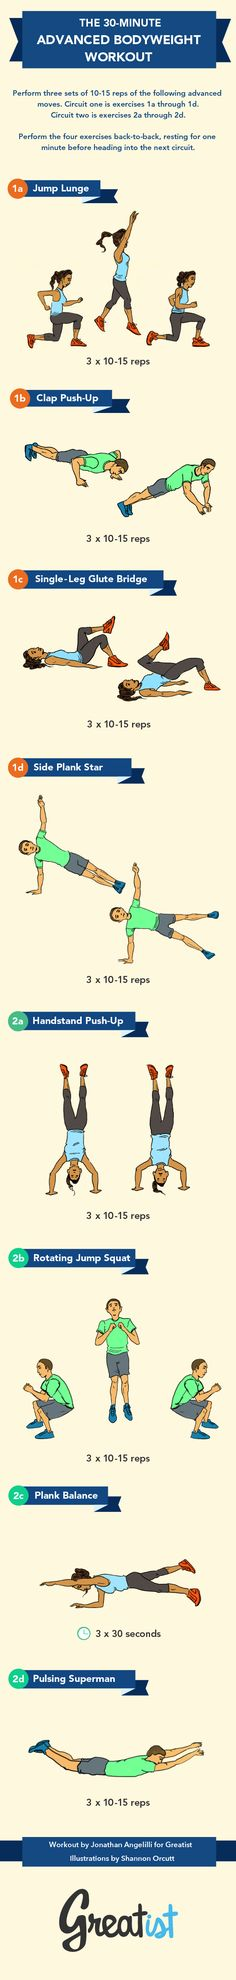 The Advanced No-Gym Bodyweight Workout [INFOGRAPHIC] | #Fitness #Exercise #Sets #Reps #Progression #CircuitTraining #StrengthTraining #TotalBody #Cardio #Workouts #AtHome #Budget #Bodyweight #30Minutes #HighIntensity #Pictures #Handstands #Plank #Core #Superman #ToDo